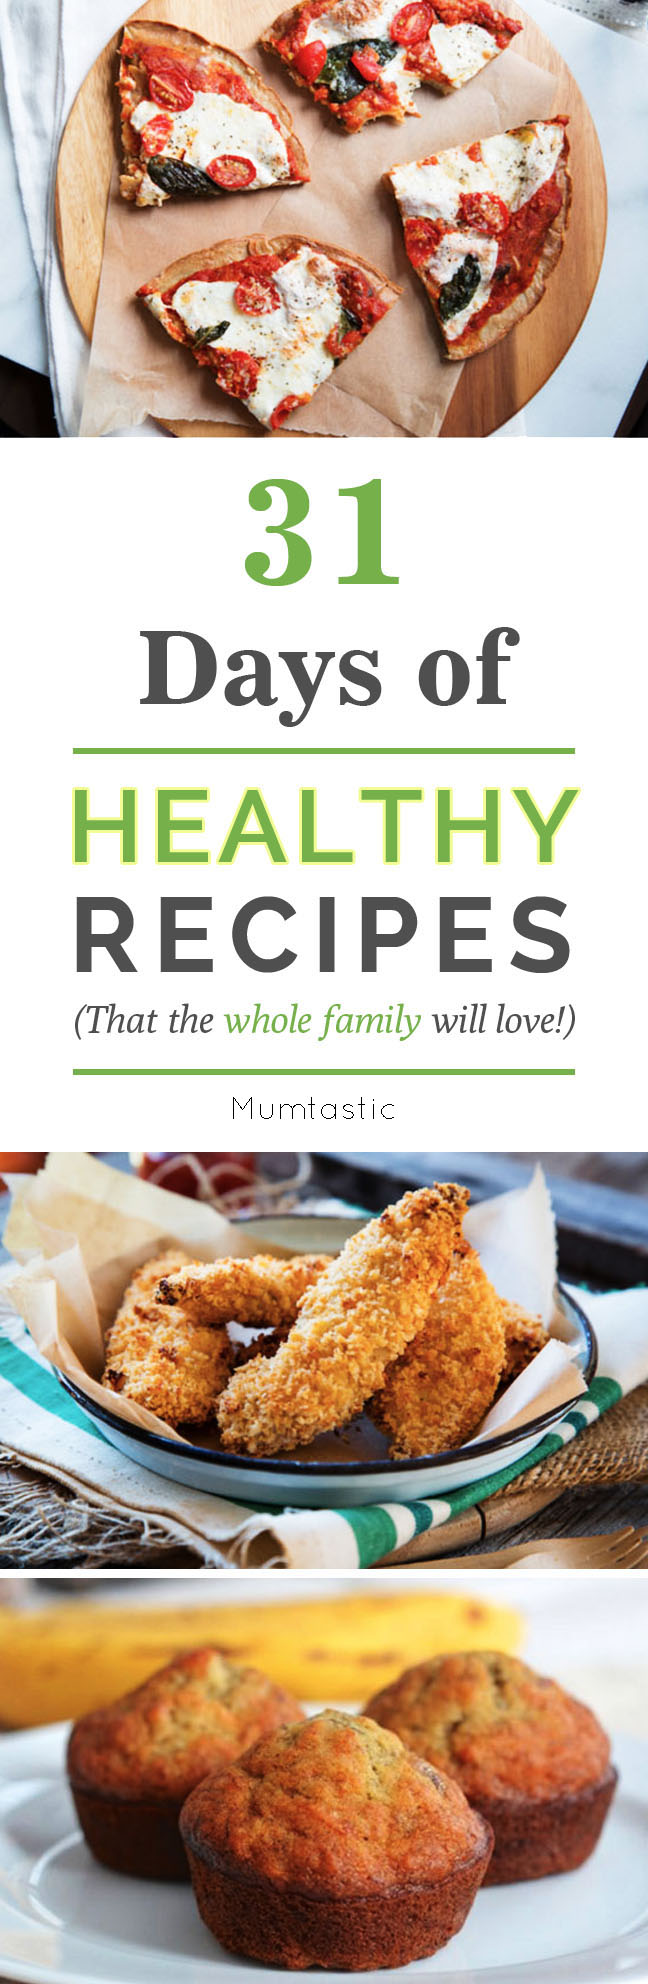 31 Days of Healthy Recipes the Whole Family Will Love